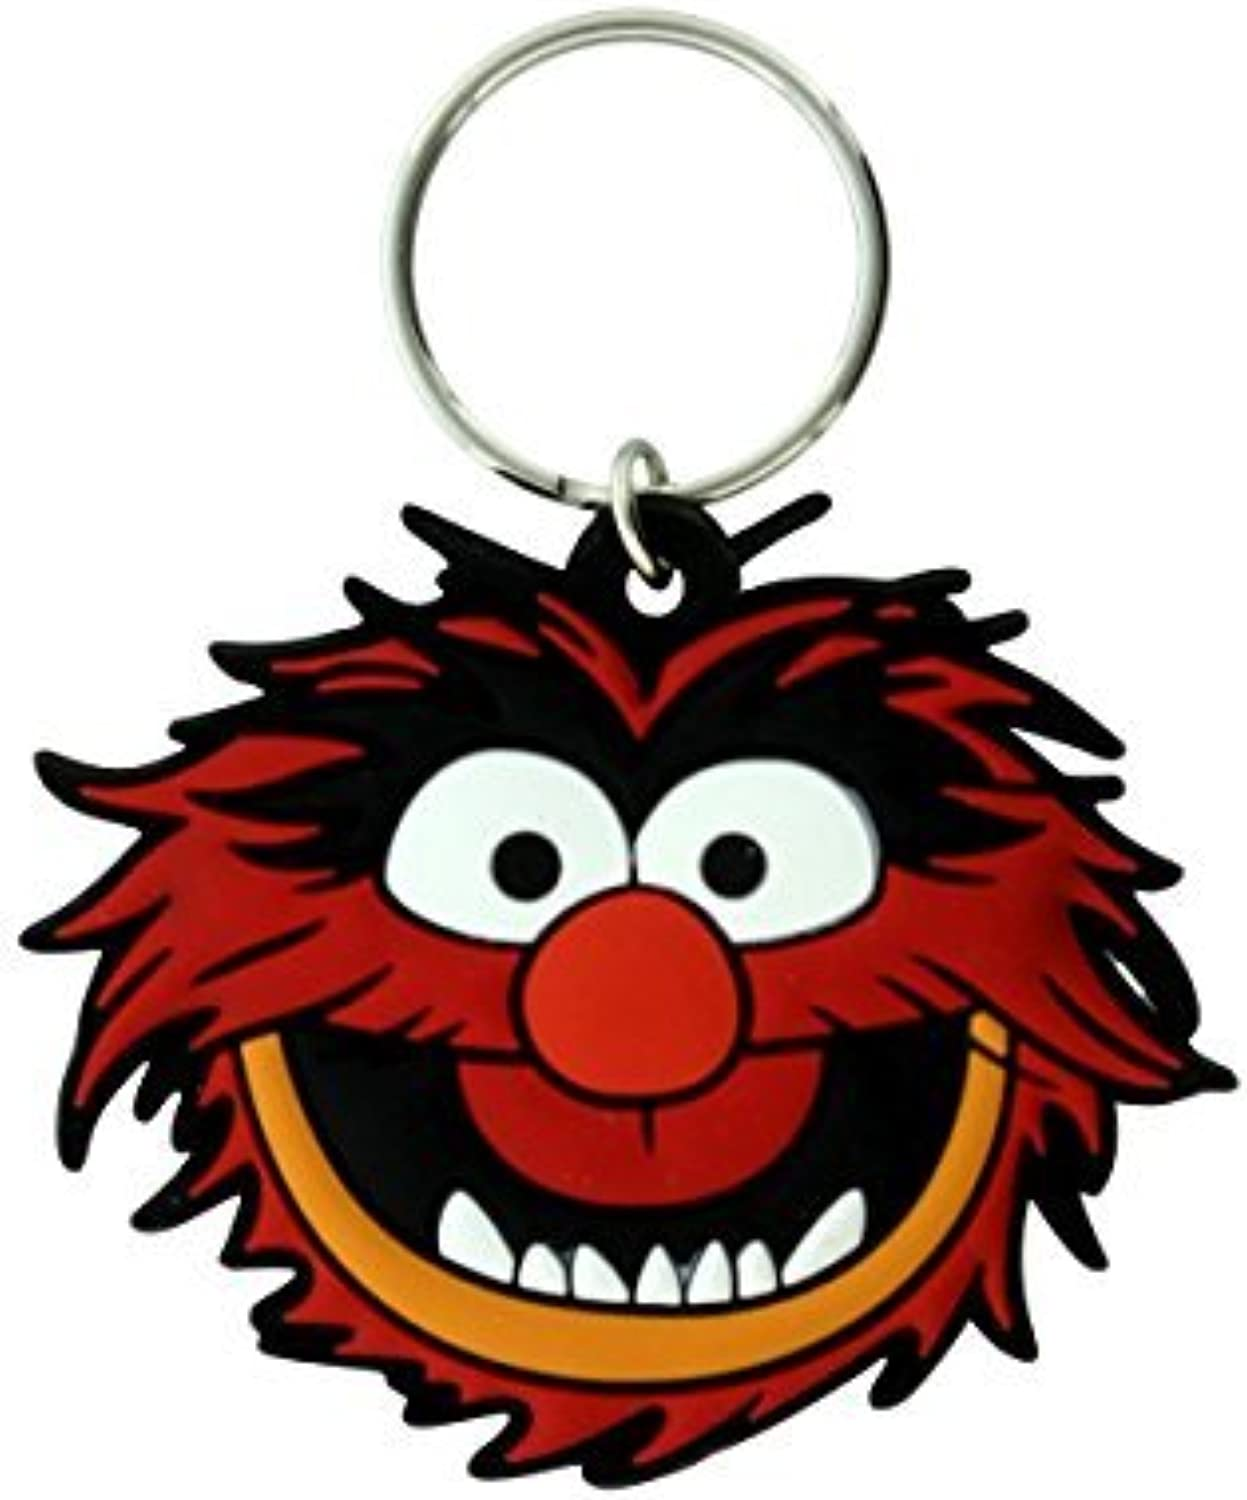 The Muppets Animal Rubber Keychain by Muppets